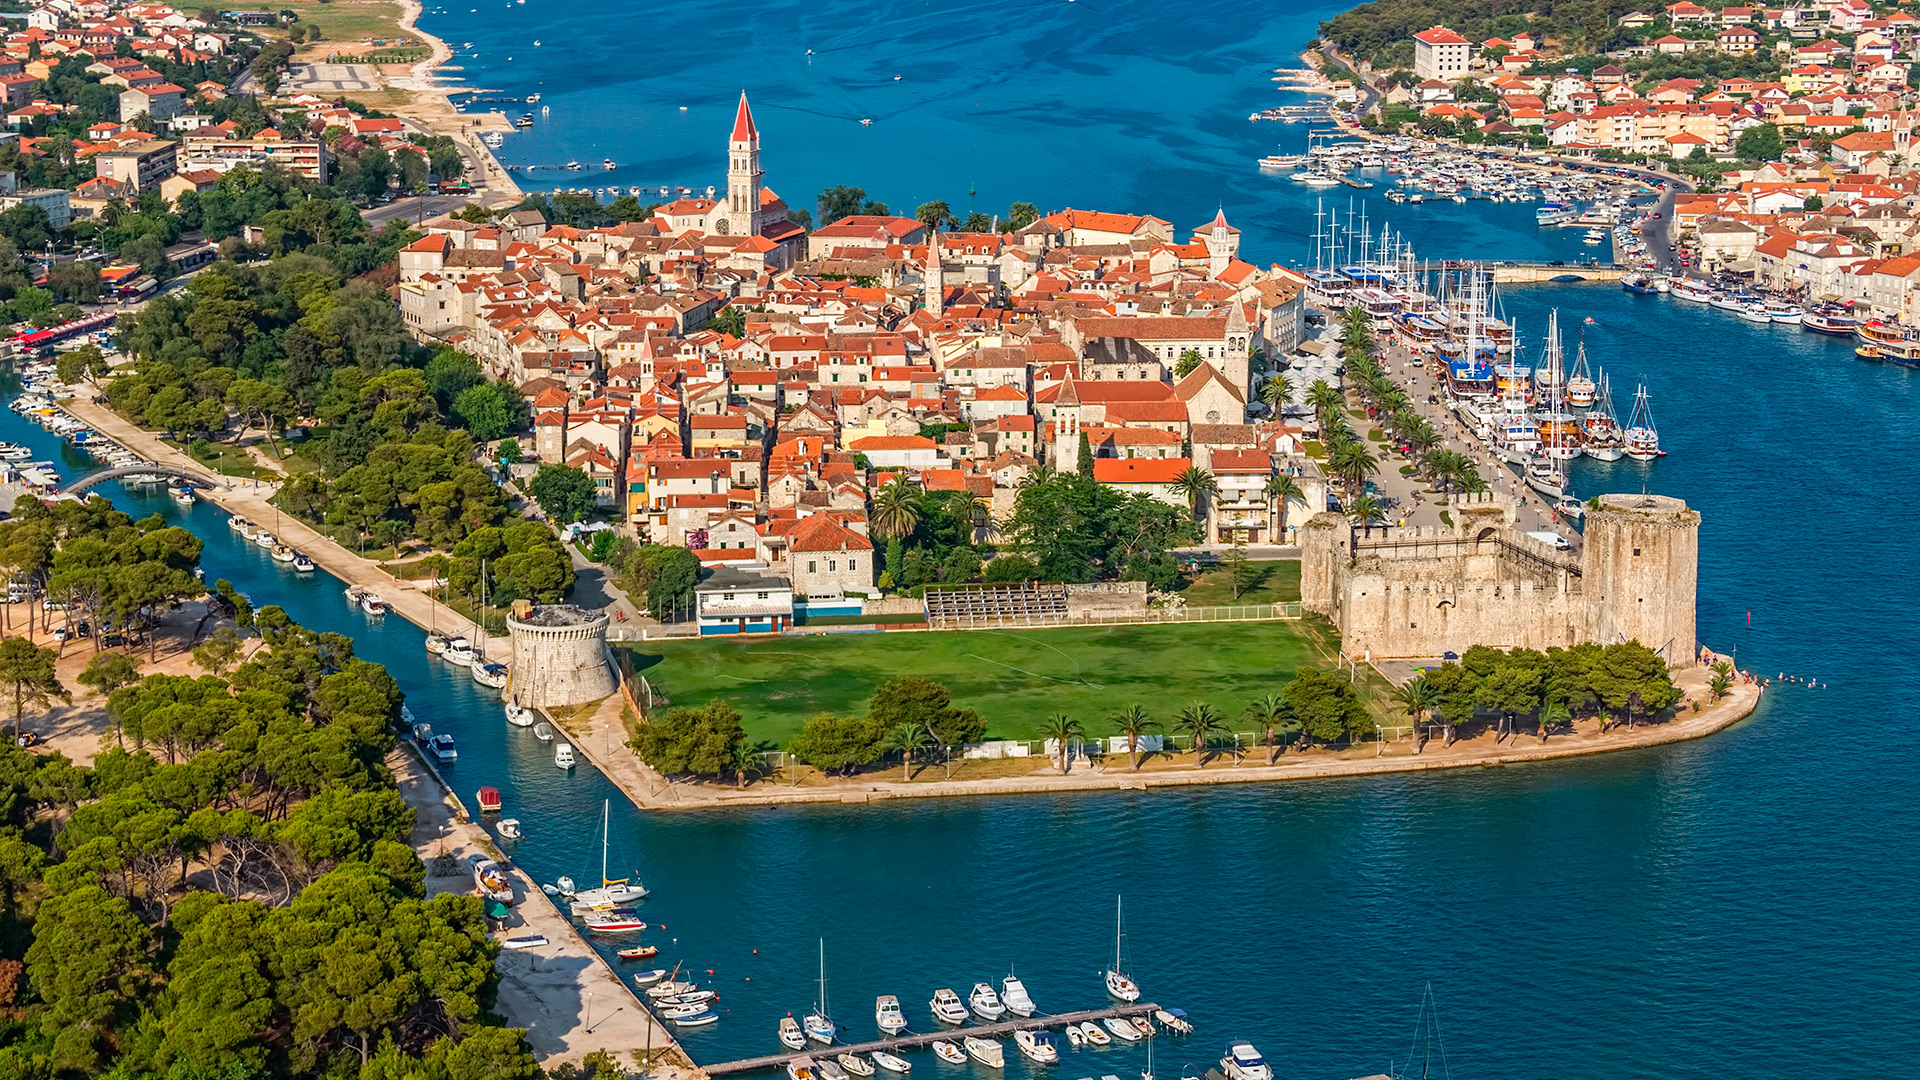 Panorama of the historical part of the city, Trogir, Croatia